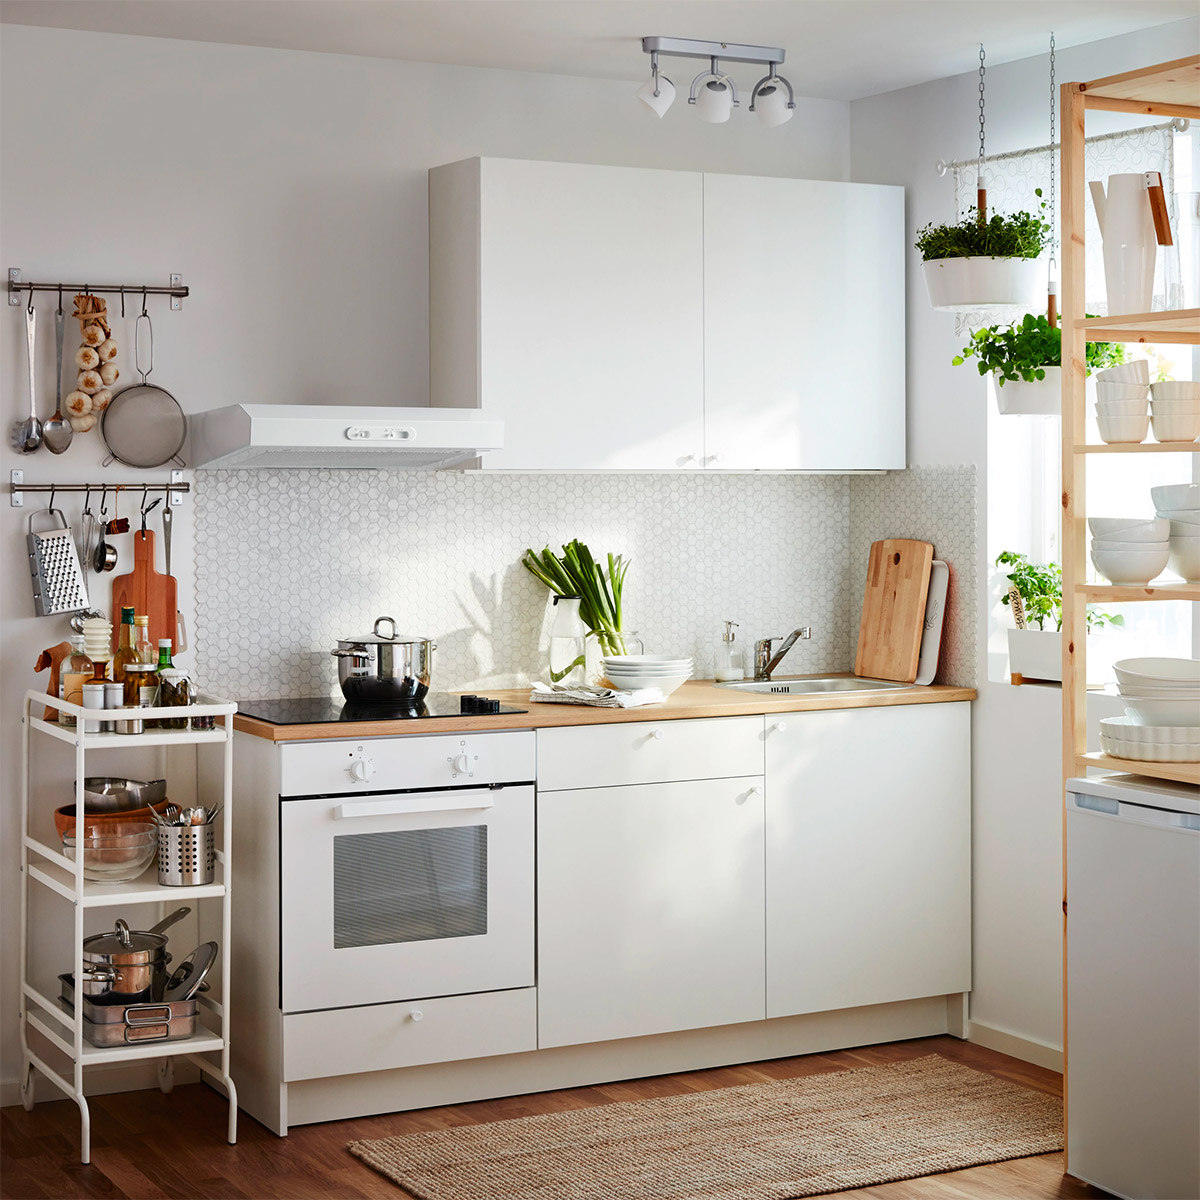 50 Splendid Small Kitchens And Ideas You Can Use From Them images 25